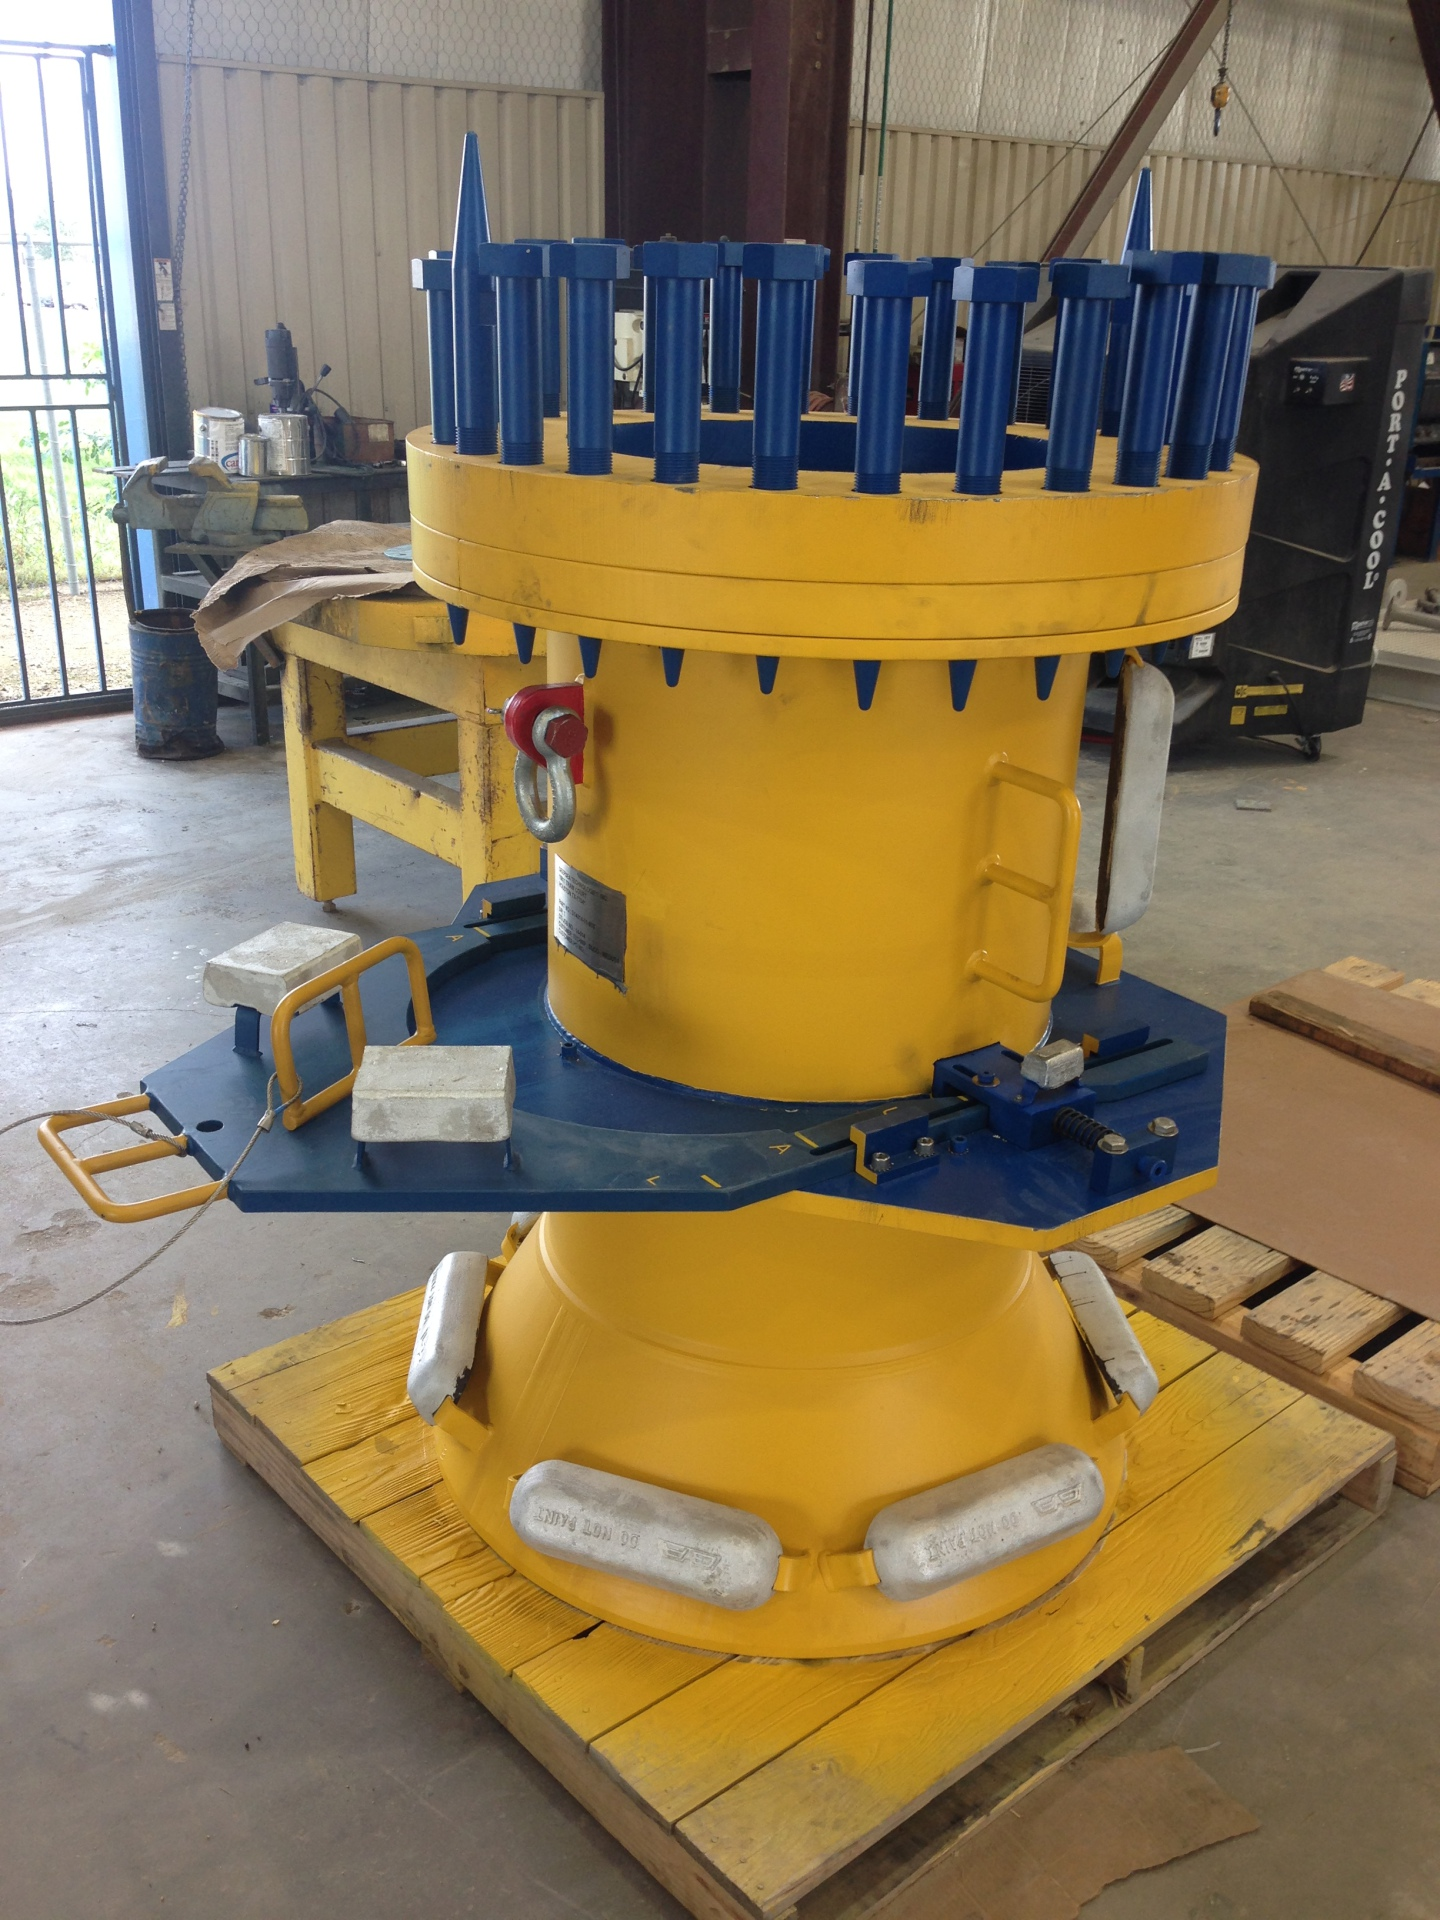 Subsea, Umbilical, Infield, Dynamic, Technip, Reels, Load out, System, Integration, Testing, , Mudmat, Termination, Assembly, SUTA, IUTA, Third, Party Inspection, Channelview, Houston, Texas, Dragon, Deepwater, Engineering, Management, Consultants, Installation, Commissioning, Packing, Reels, Carousel, Topside, BSLM, Bend, Stiffner, Latch, Mechanism, Pull, Head, I-Tube, J-Tube